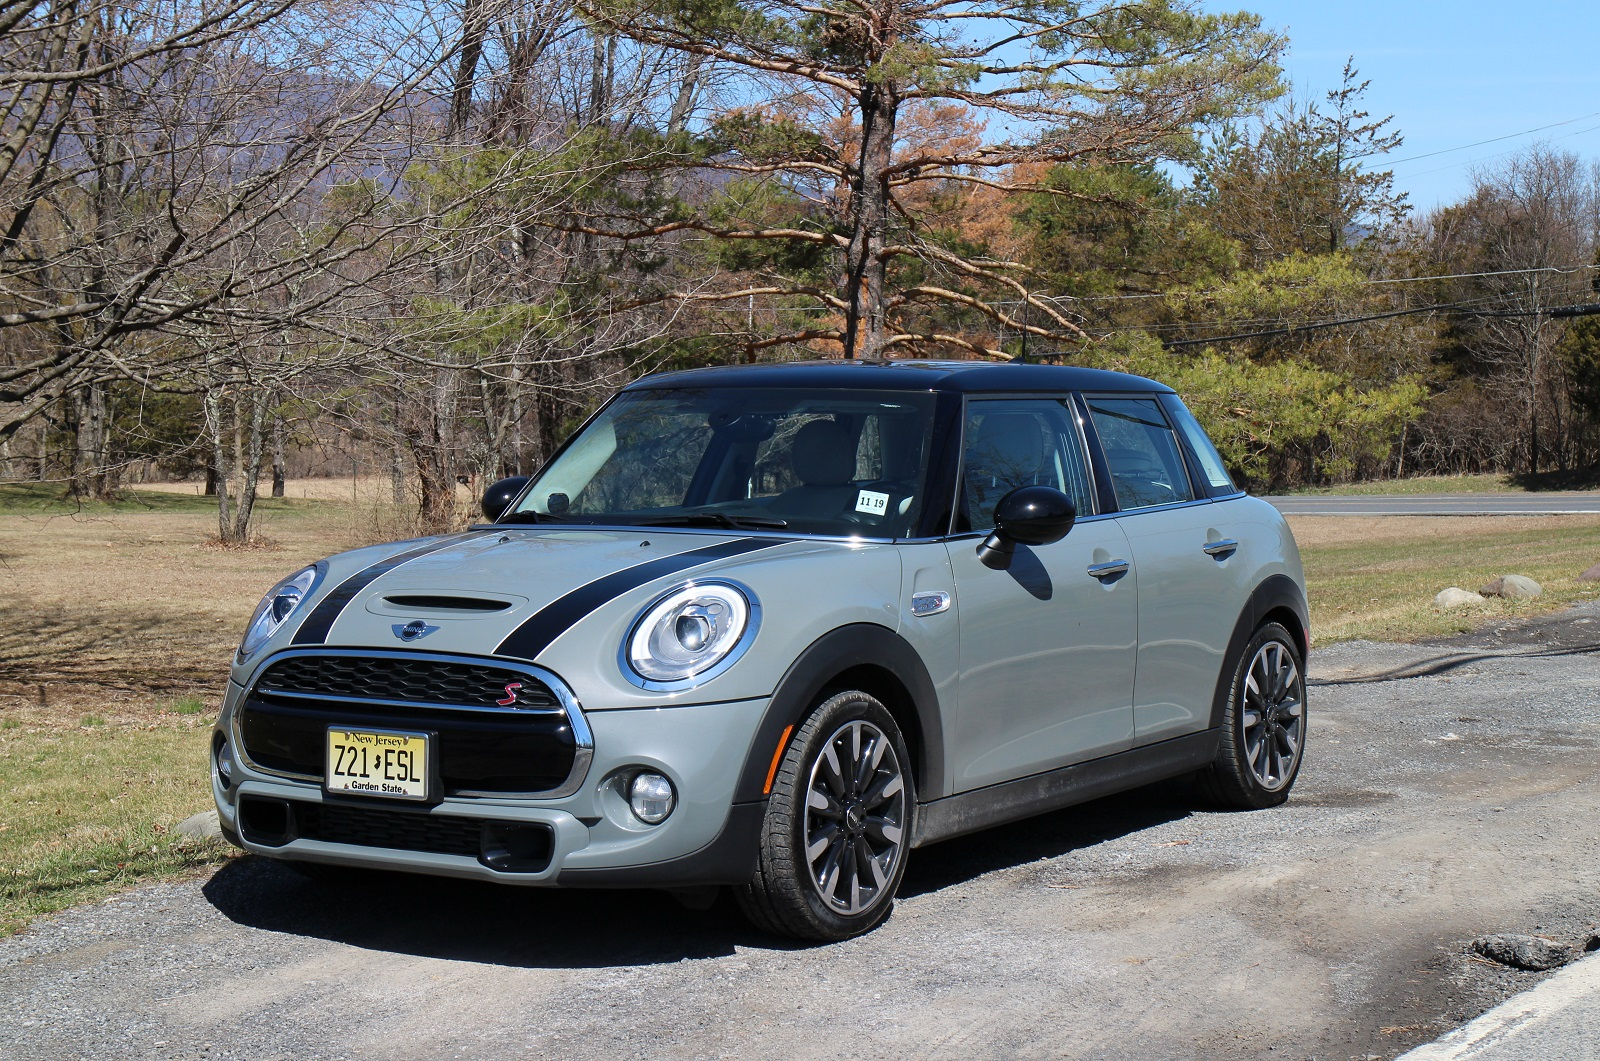 2015 mini cooper s hardtop 4 door gas mileage review page 2. Black Bedroom Furniture Sets. Home Design Ideas